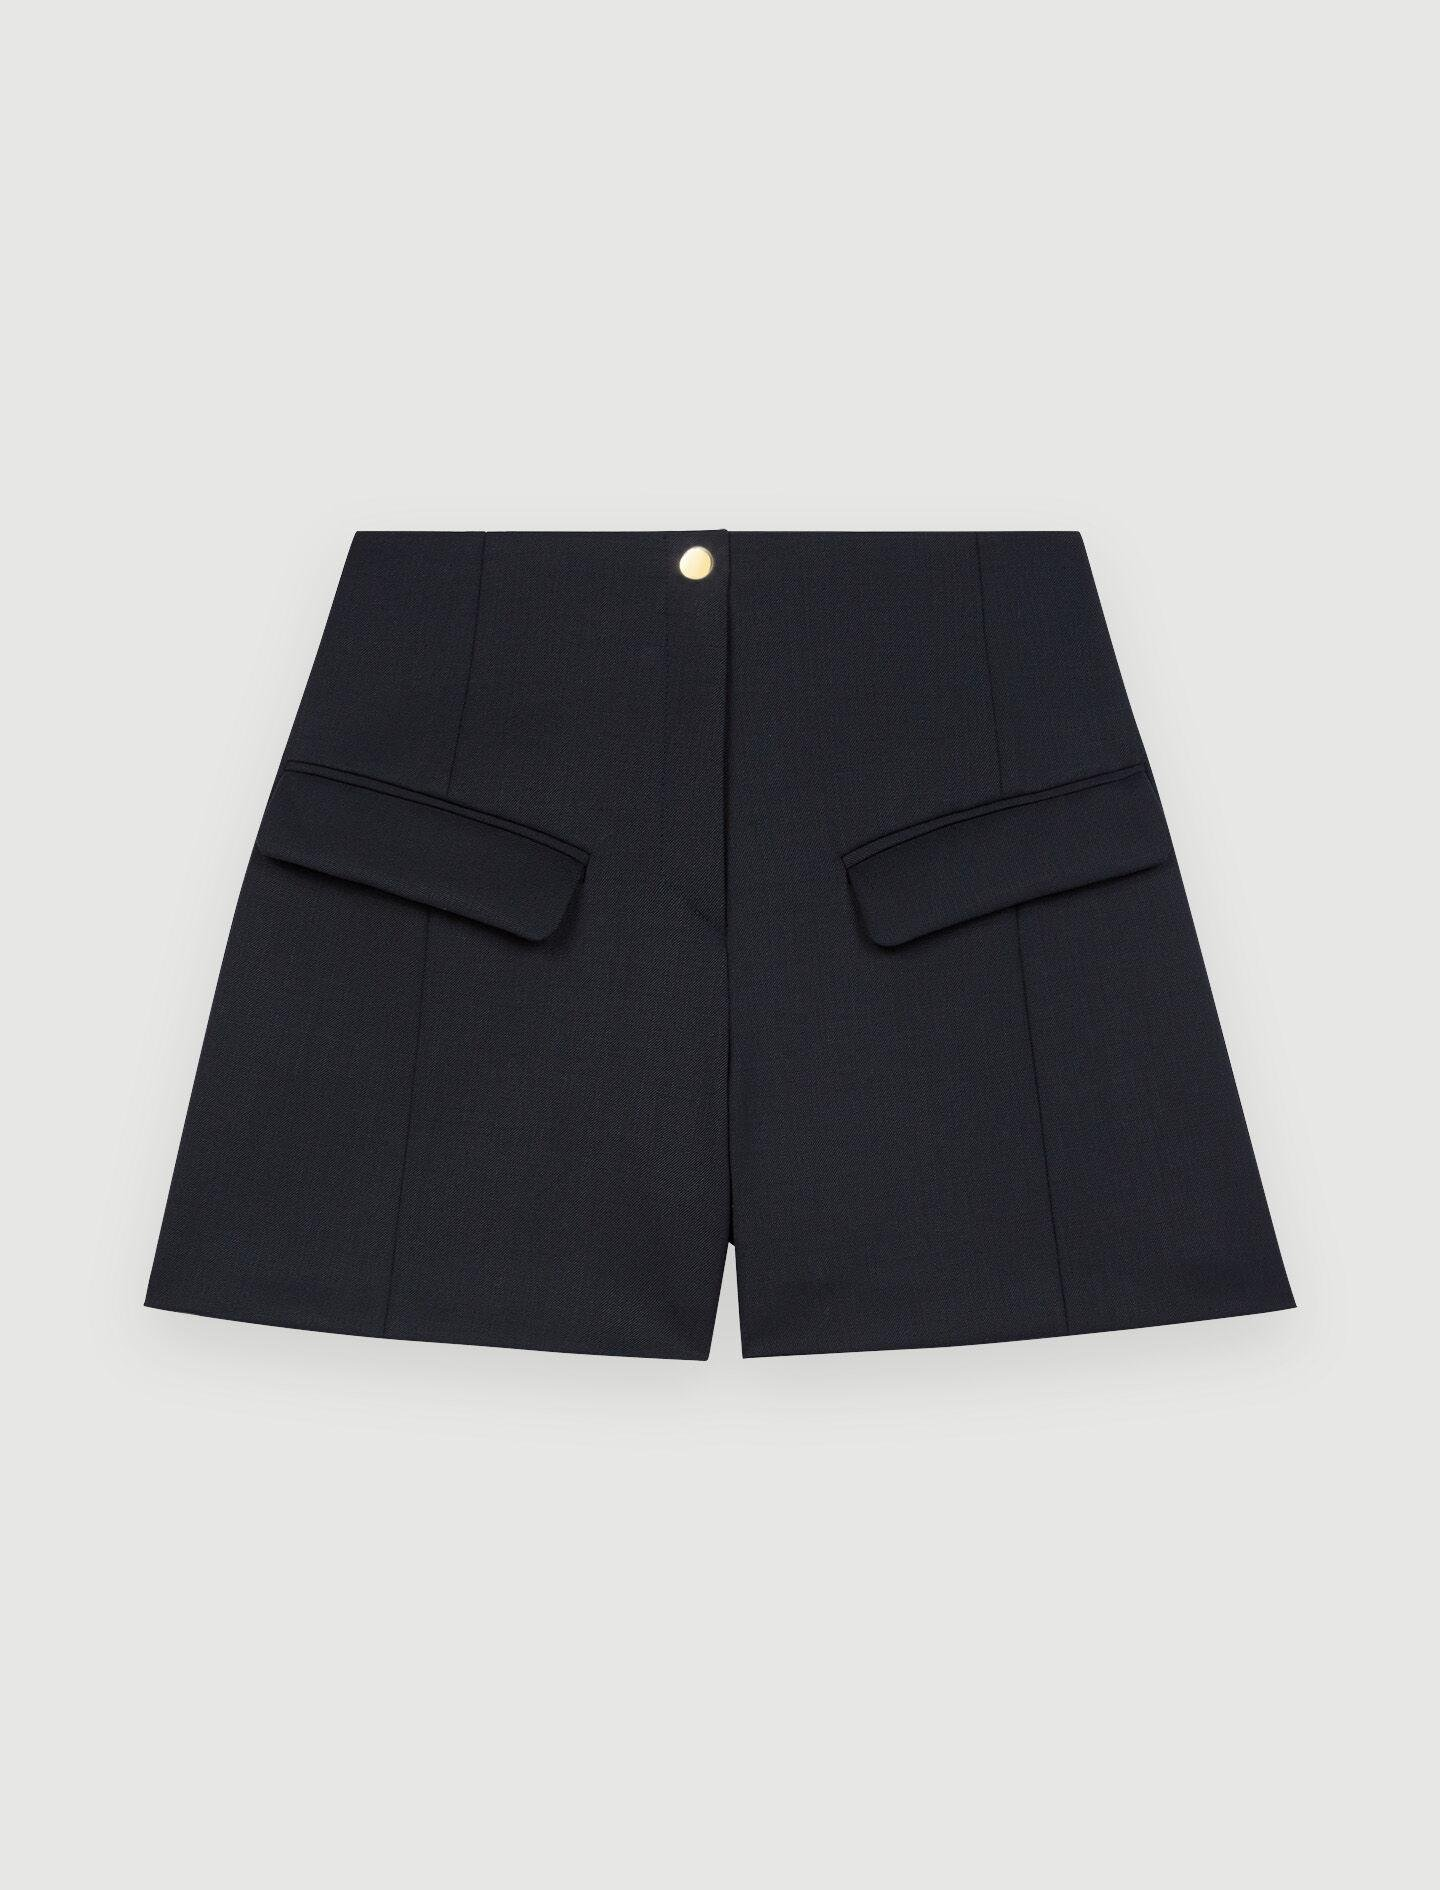 TAILORED SHORTS WITH POCKETS 4